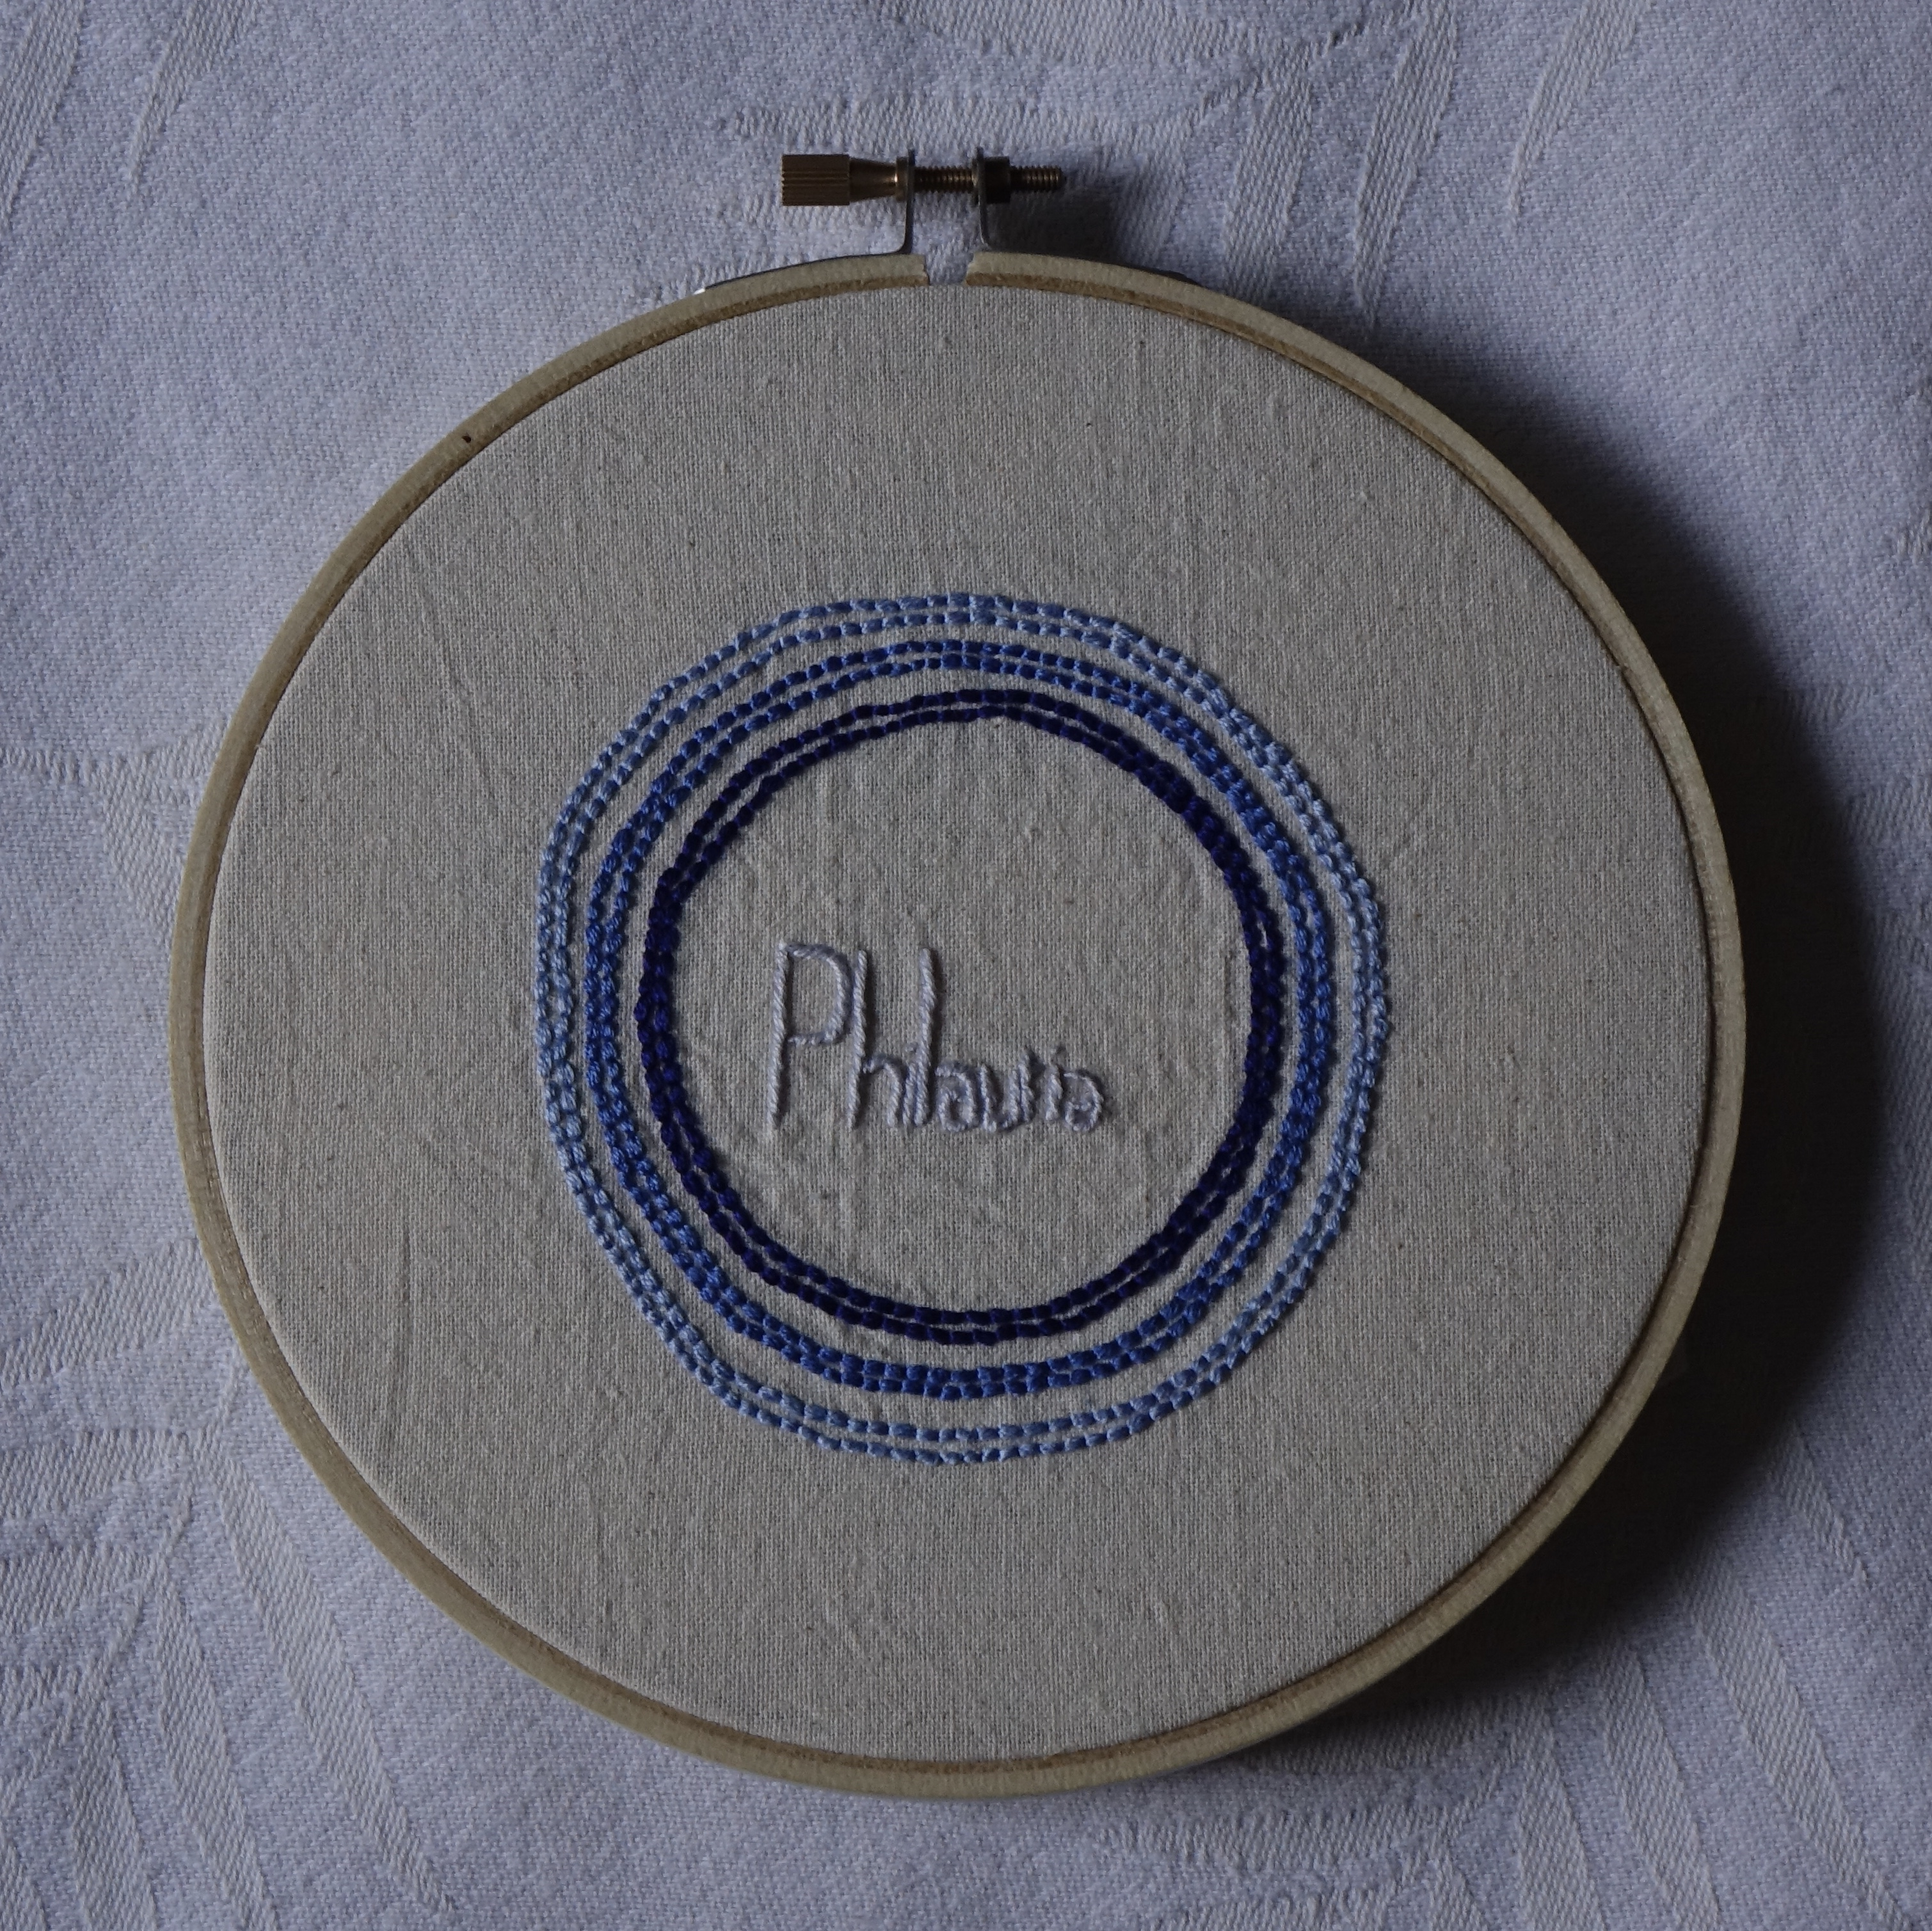 """""""Philautia"""" embroidered in pale blue print, surrounded by three concentric blue circles (palest on the outer, darkest toward the centre)."""